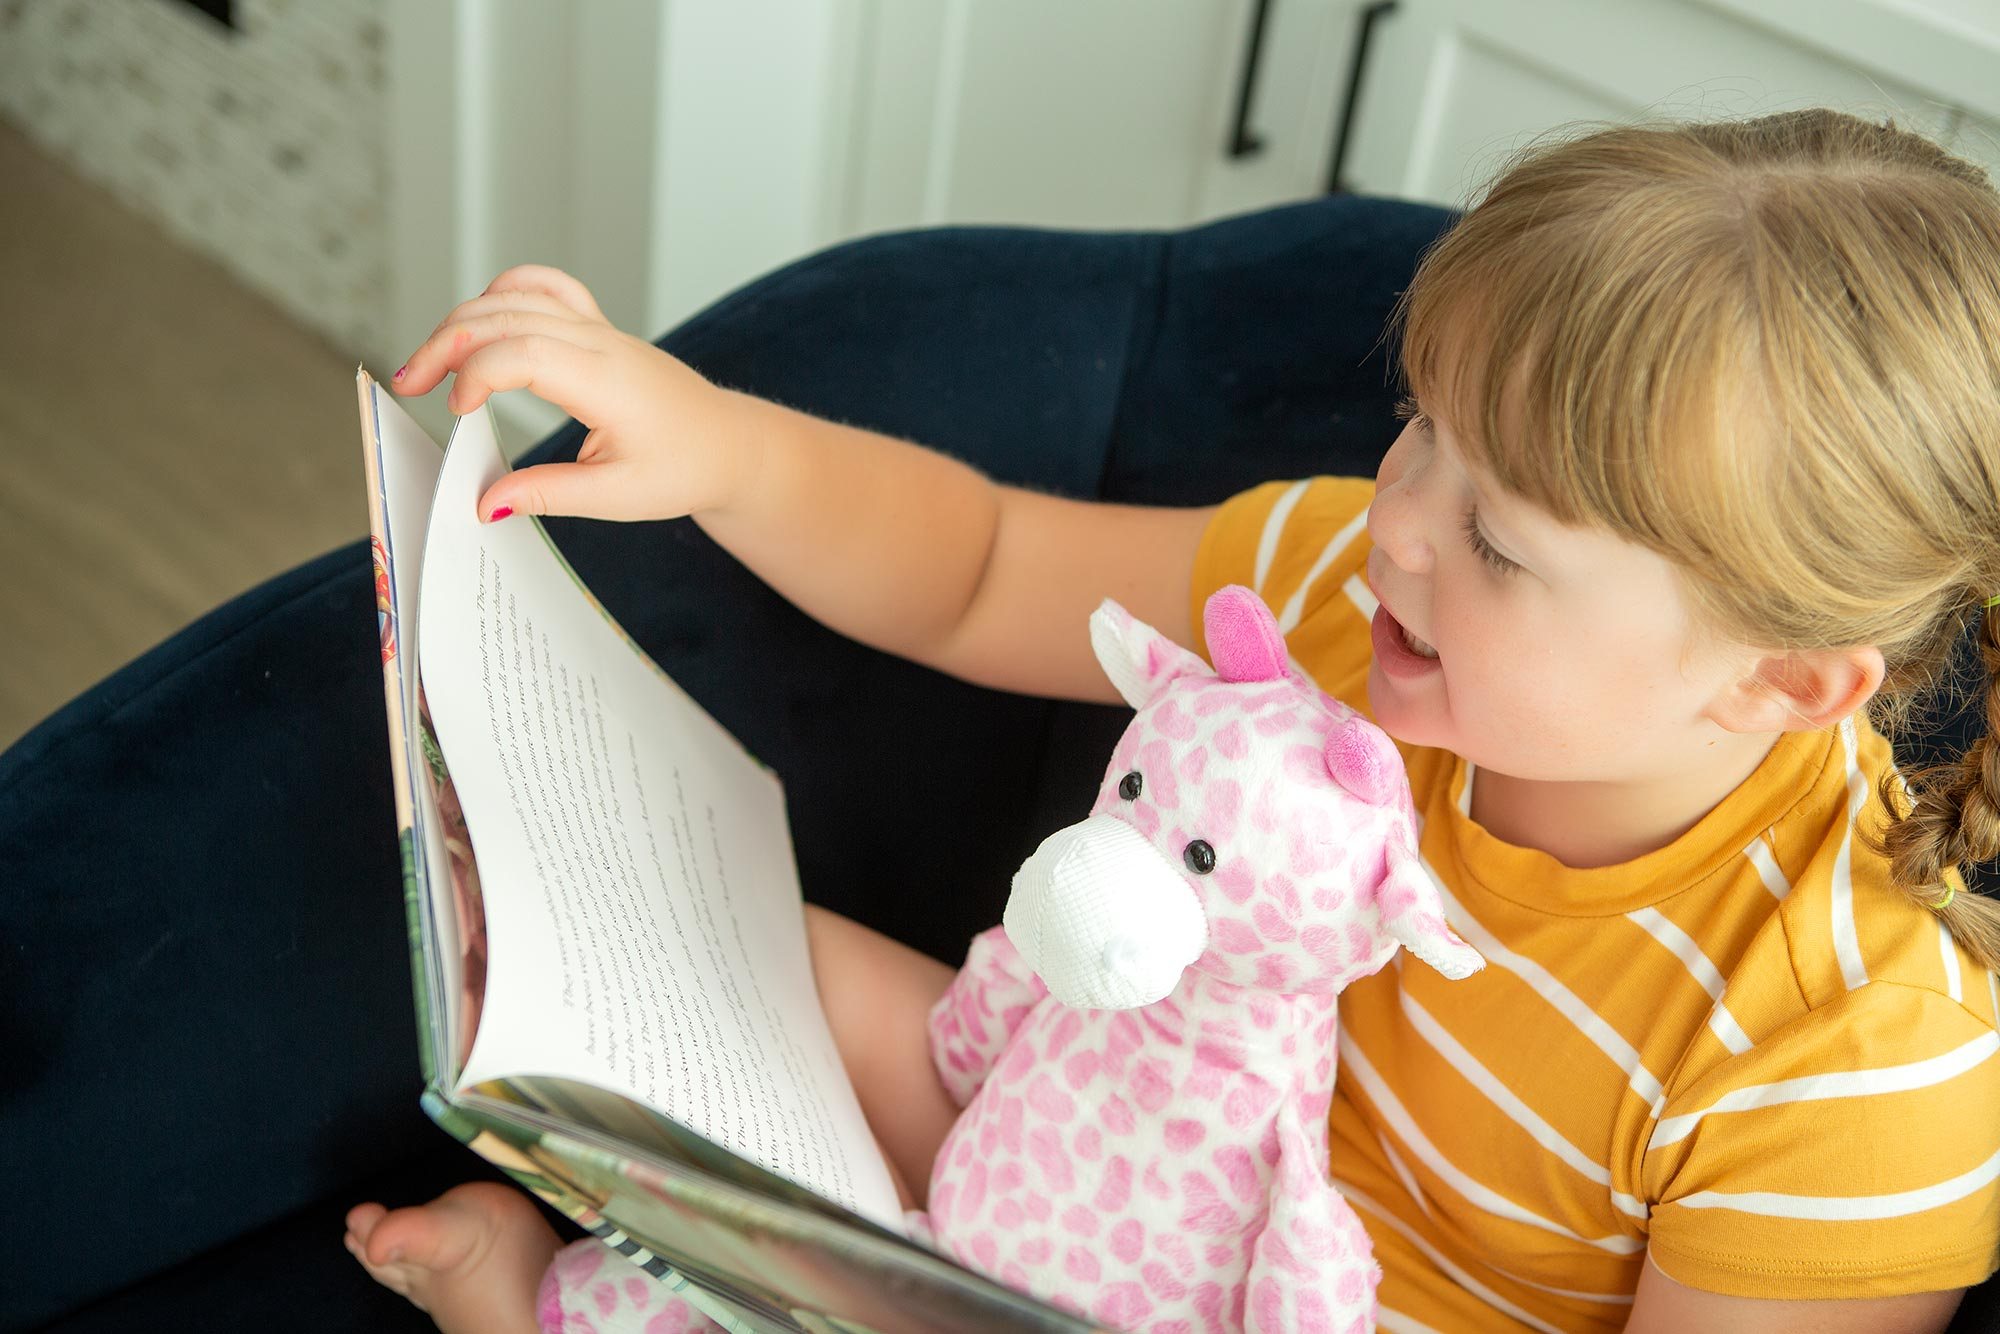 little girl reading book with pink giraffe Scentsy Buddy in her lap